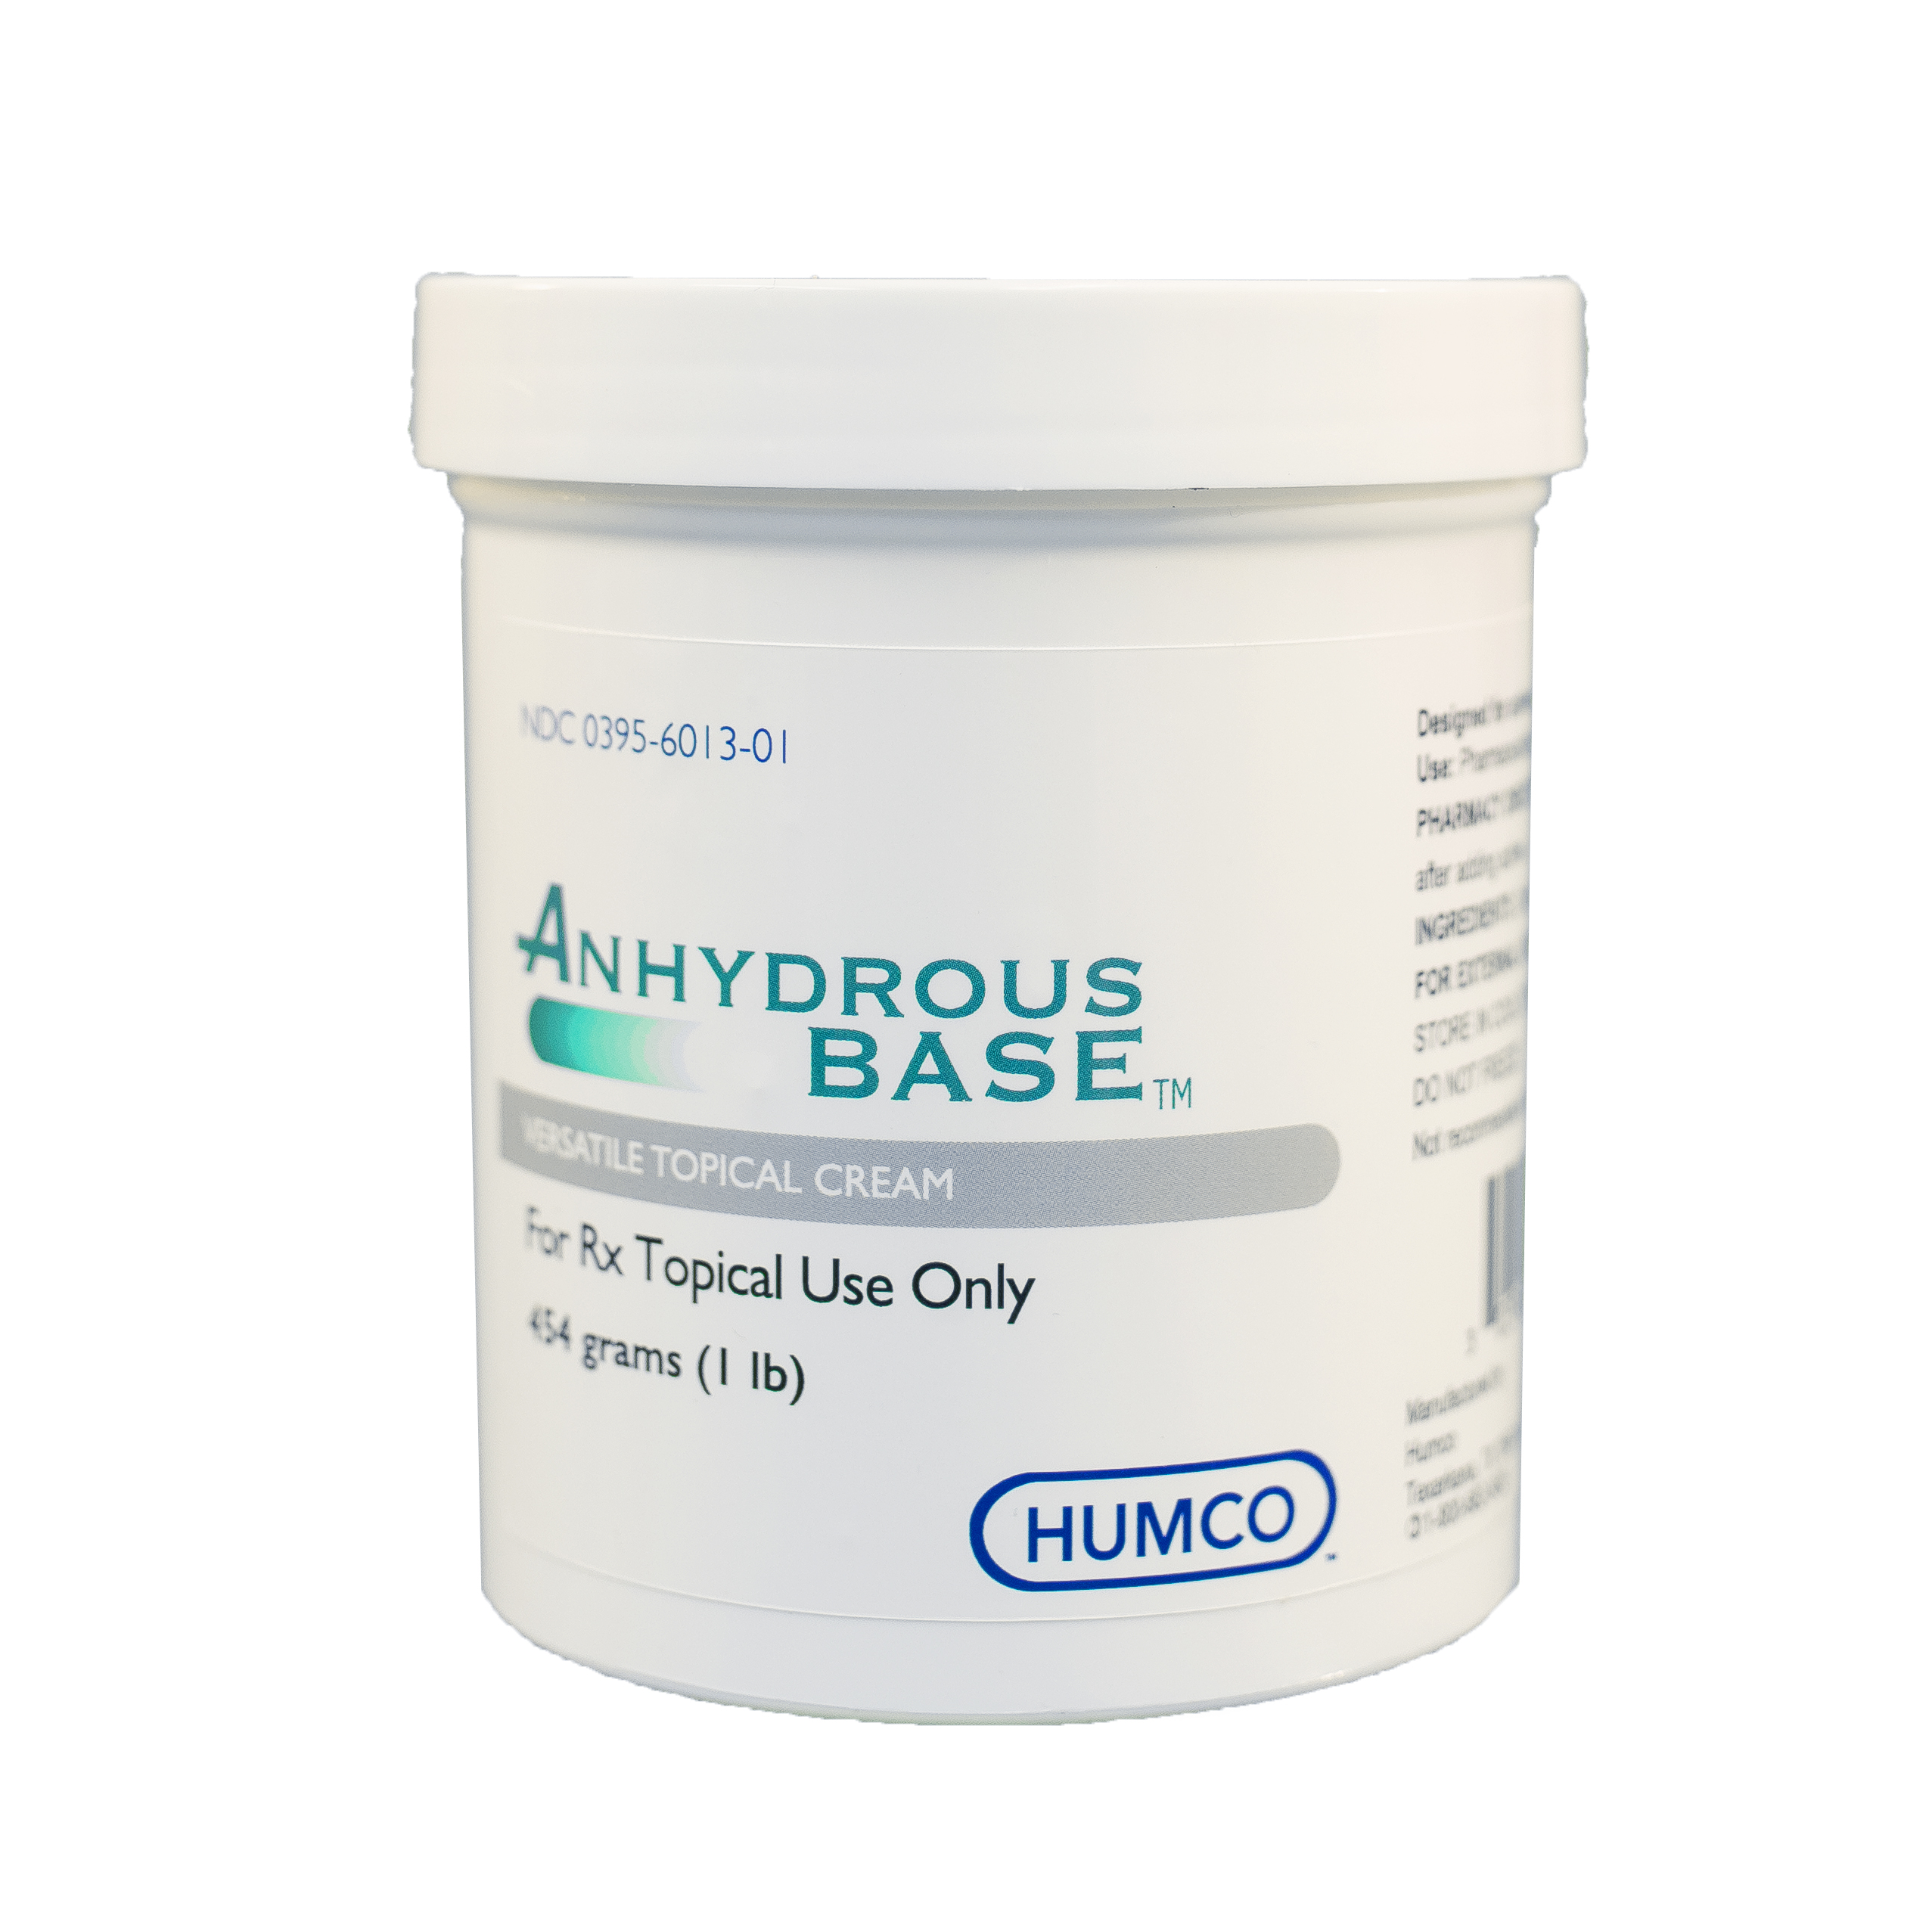 Anhydrous Base